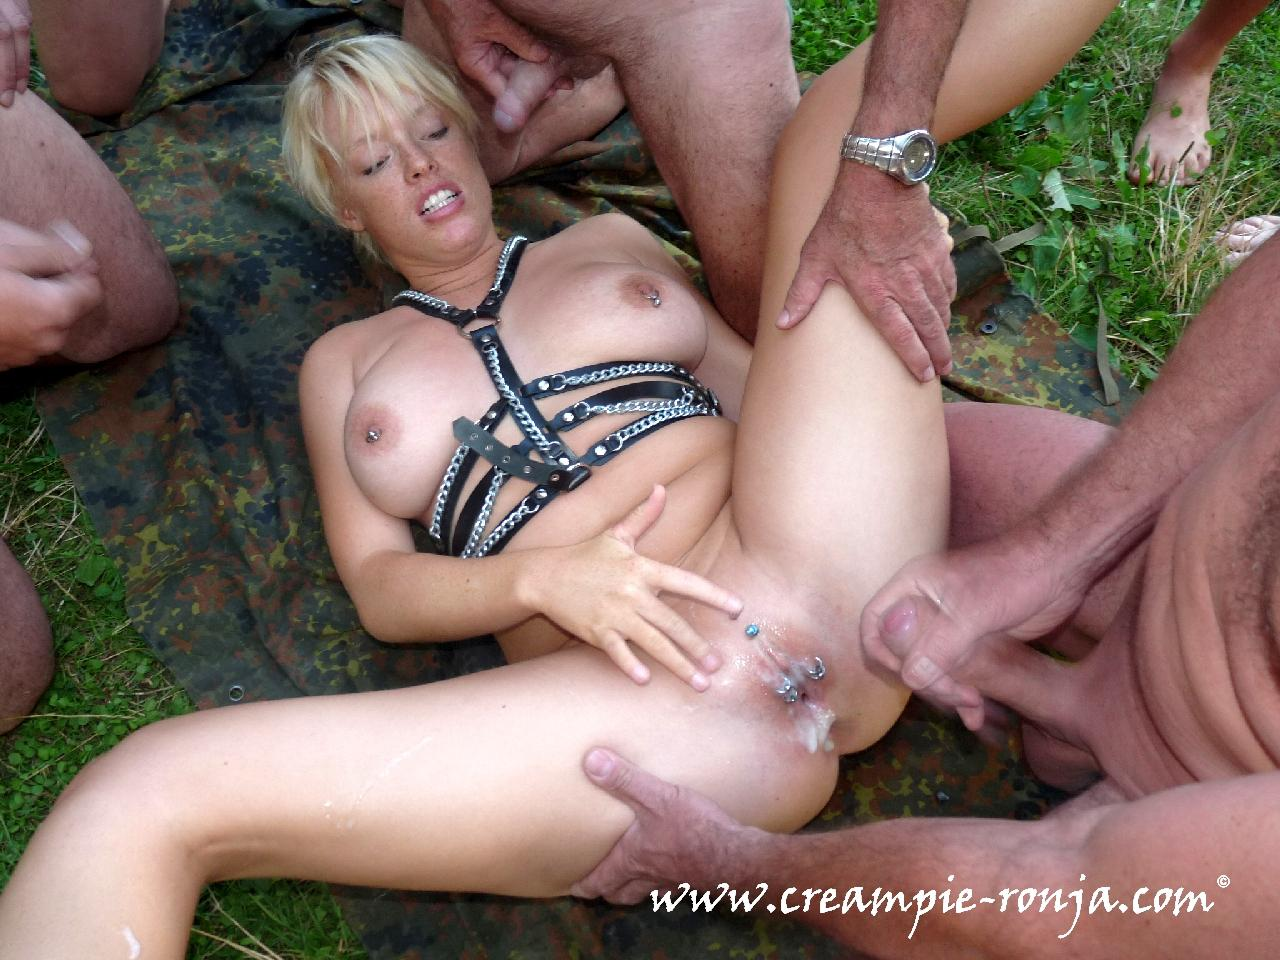 Much did gang bang creampie love his